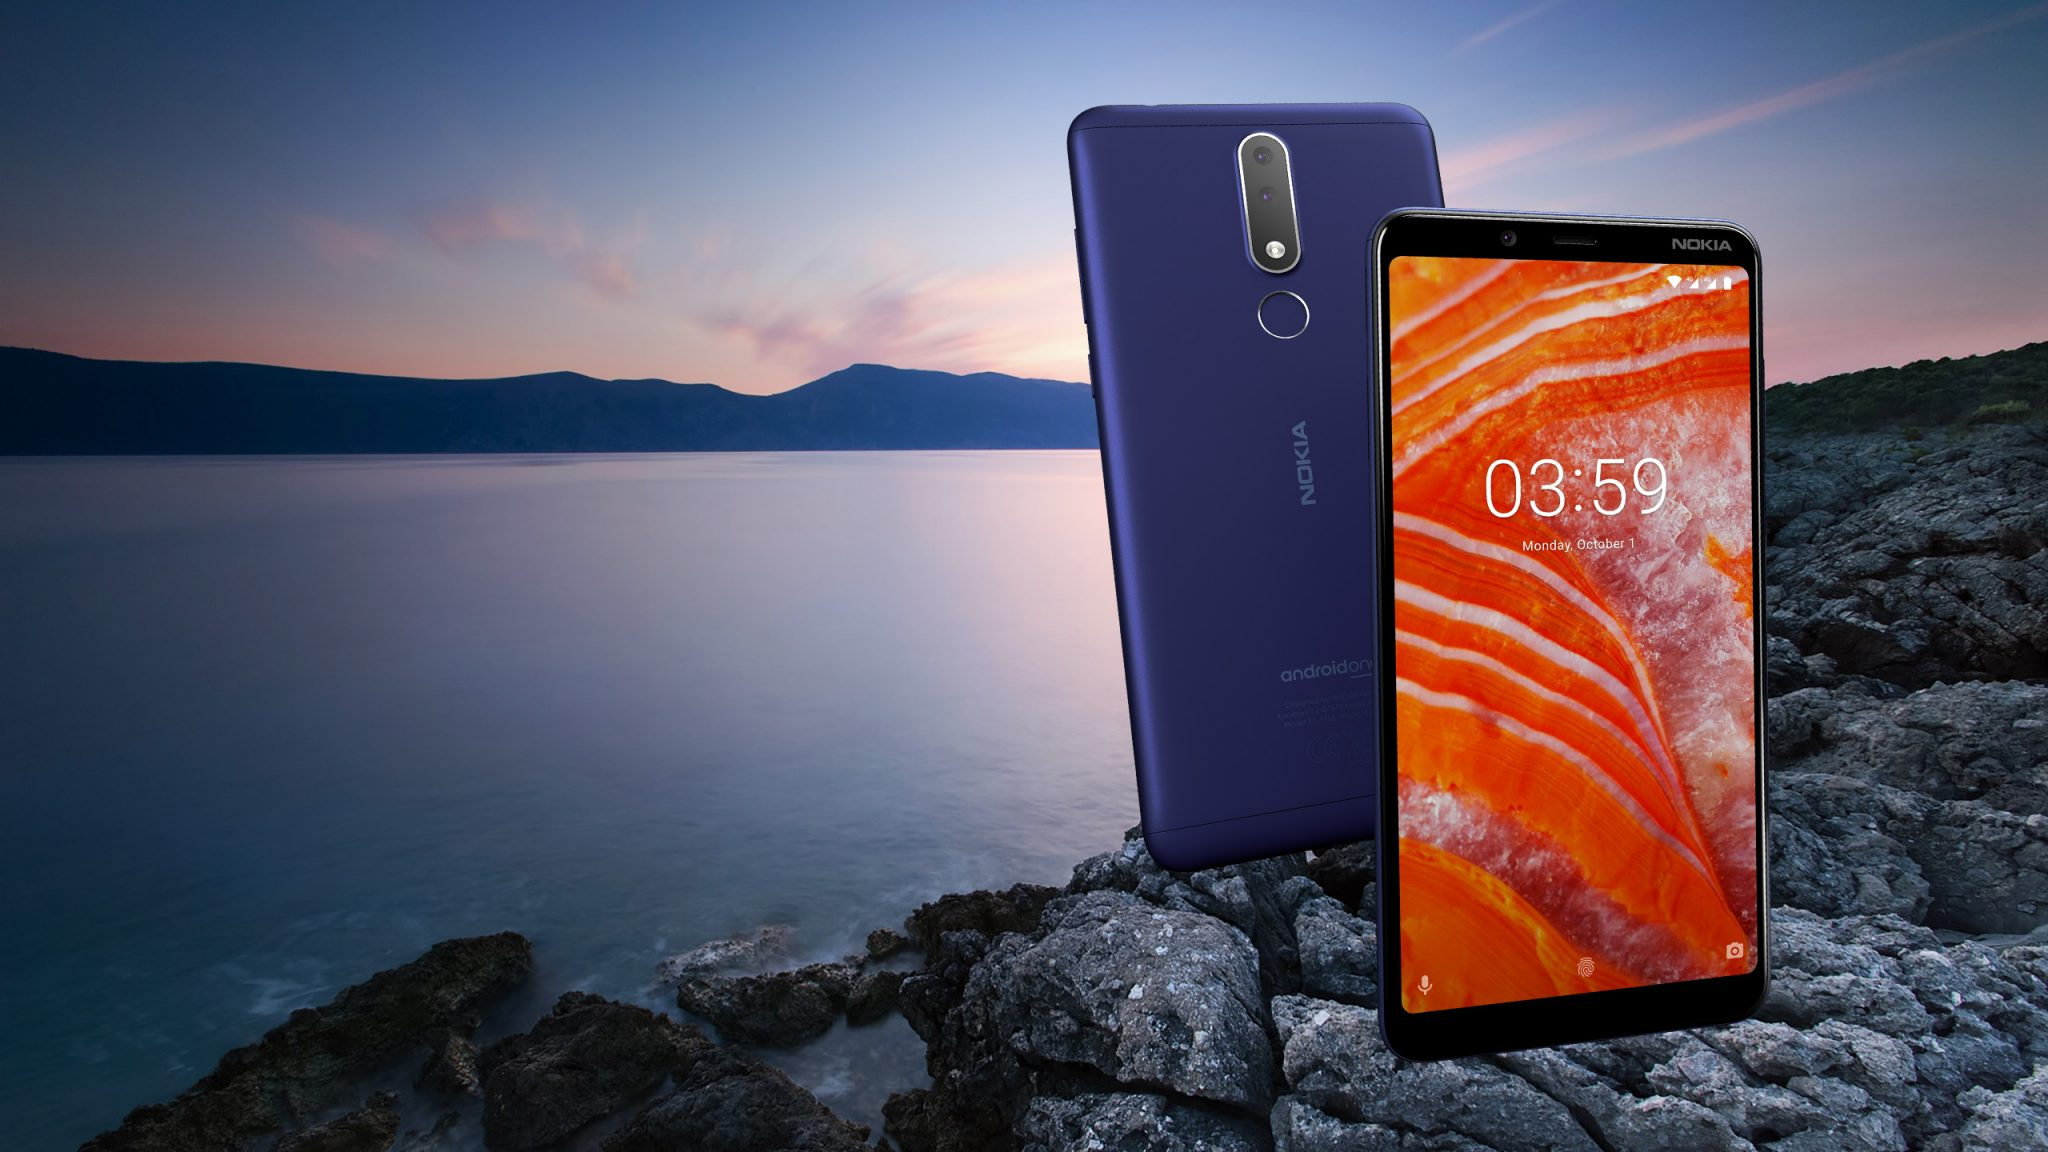 Nokia 3.1 Plus launched in India with Helio P22 & dual cameras 1